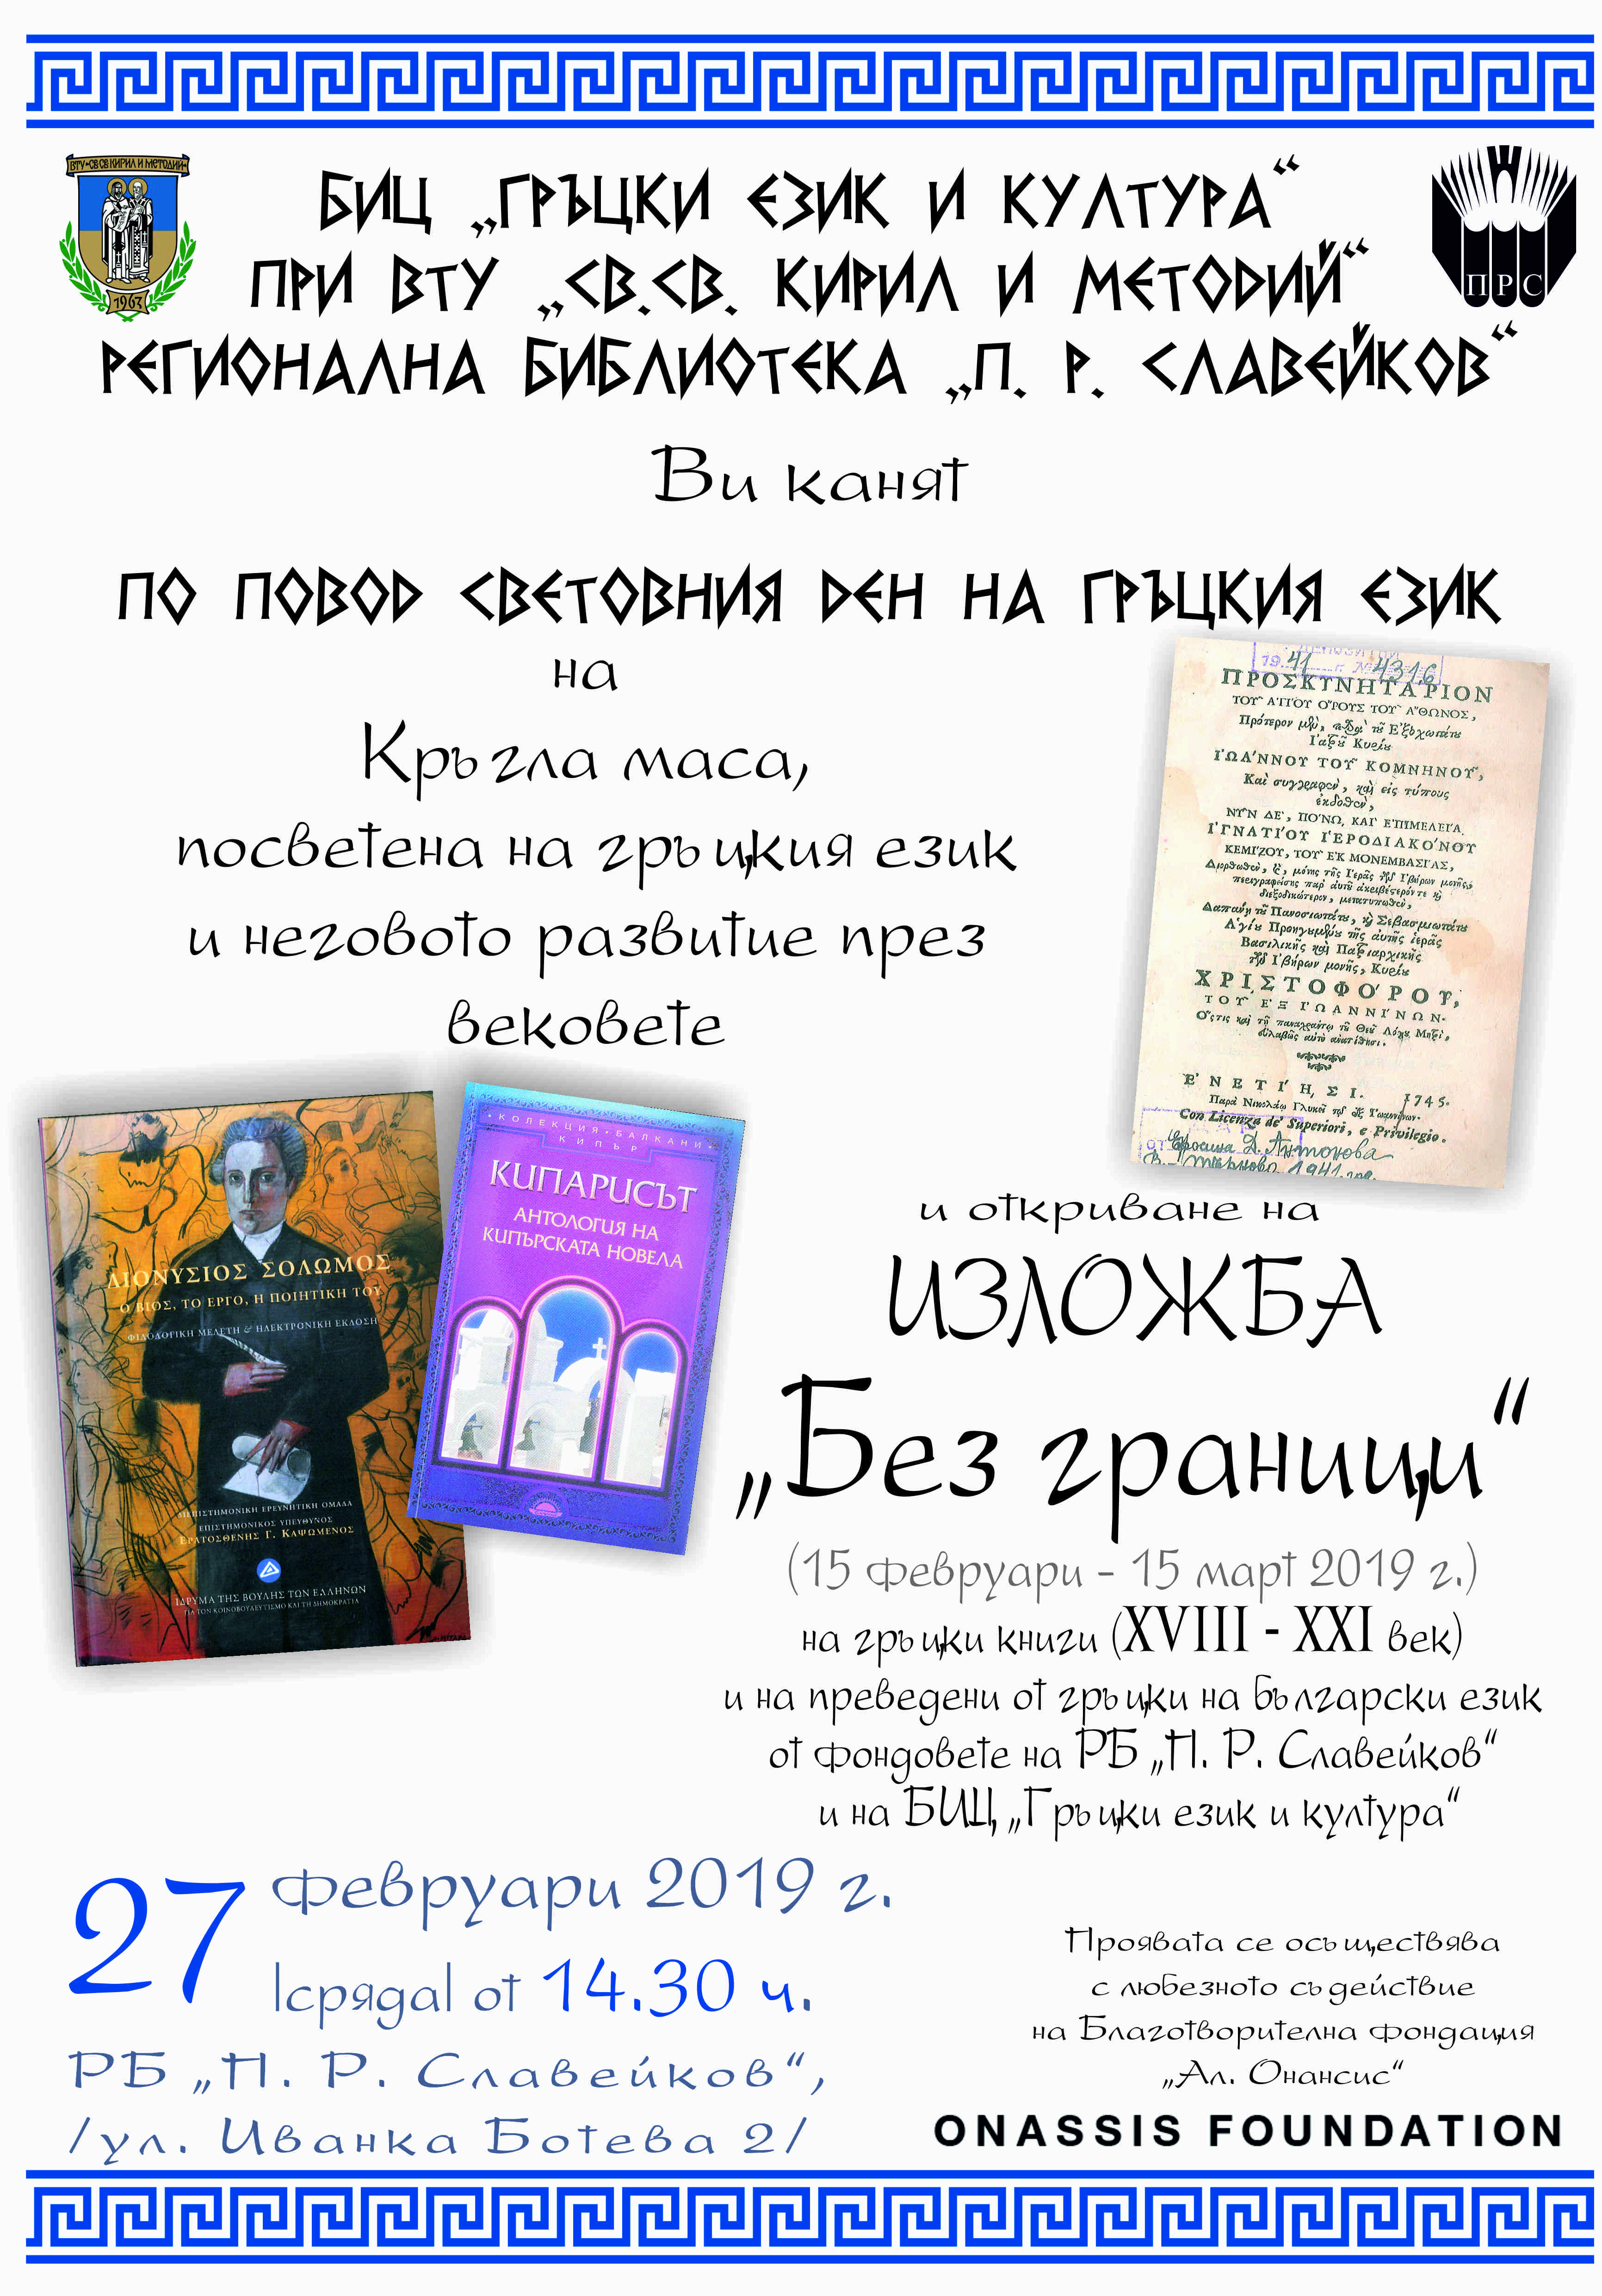 2019 02 27 greek day